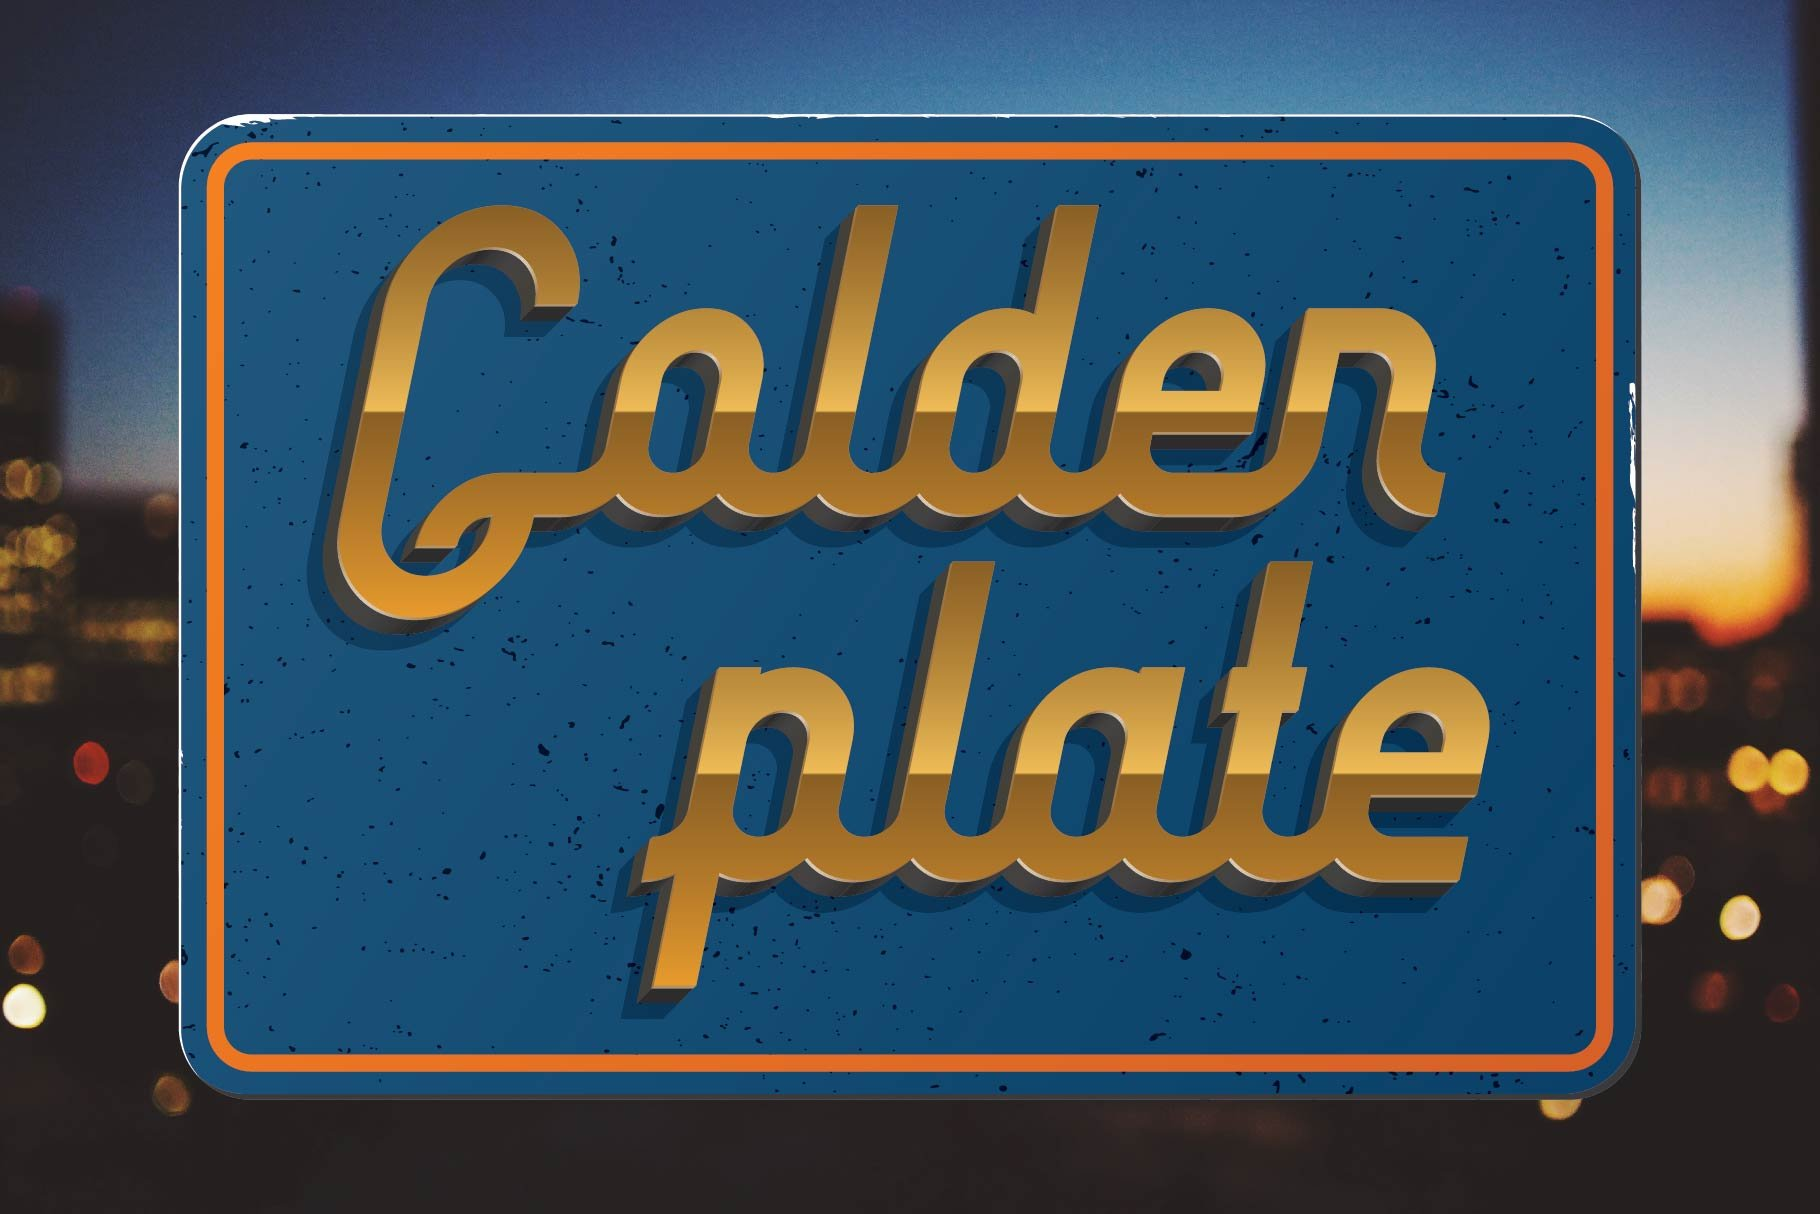 The classic combination is a blue background and a gold font.